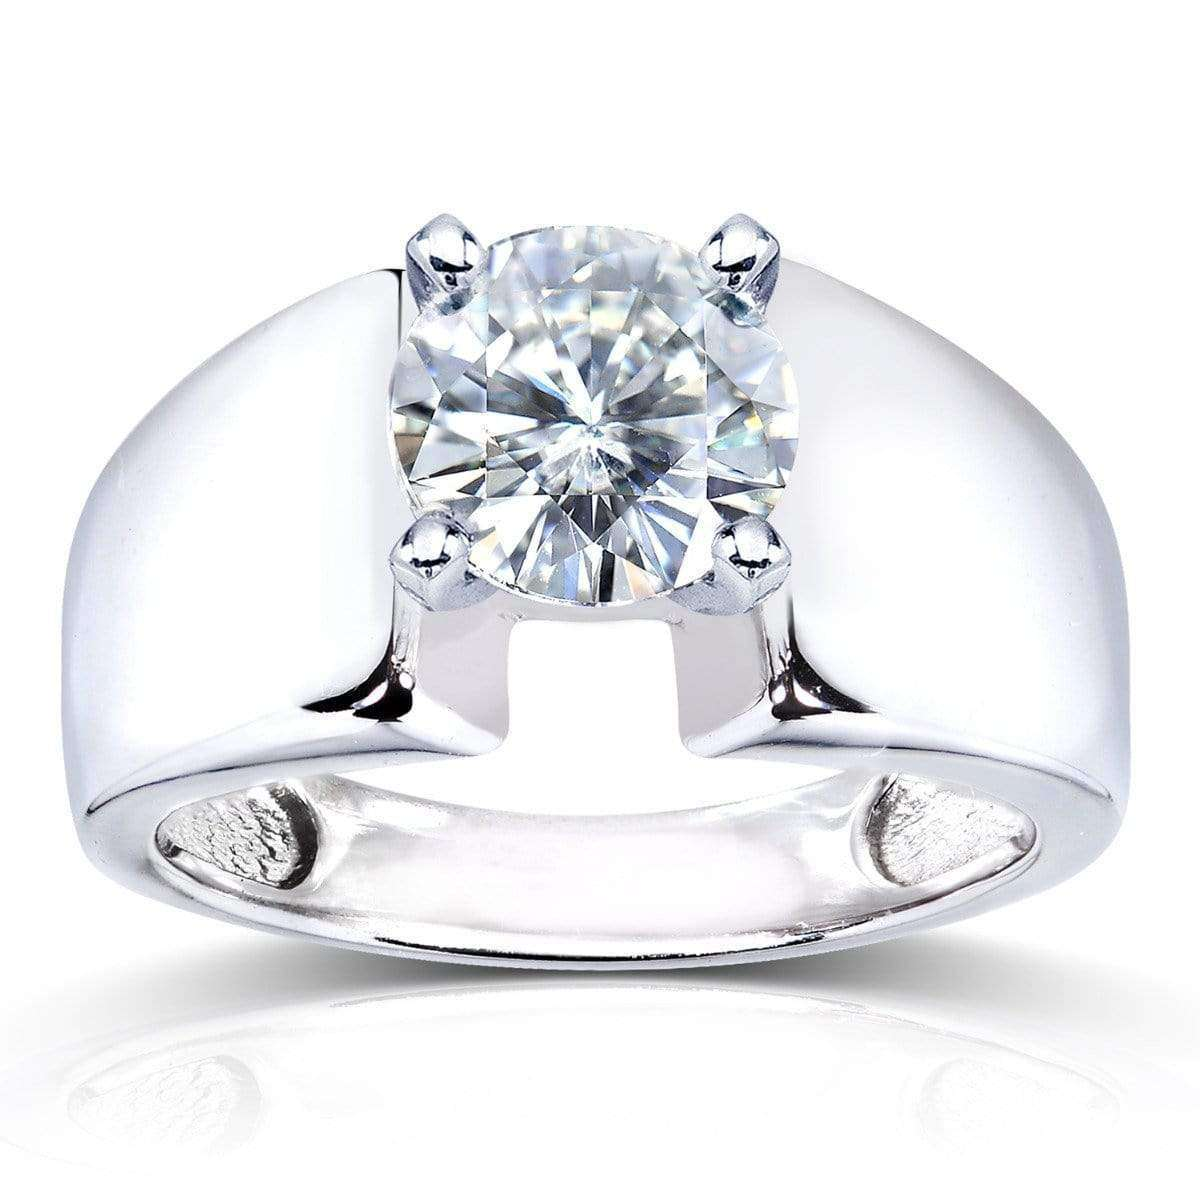 Coupons Round Moissanite Solitaire Engagement Ring 1 1/2 CTW 14k White Gold - 7